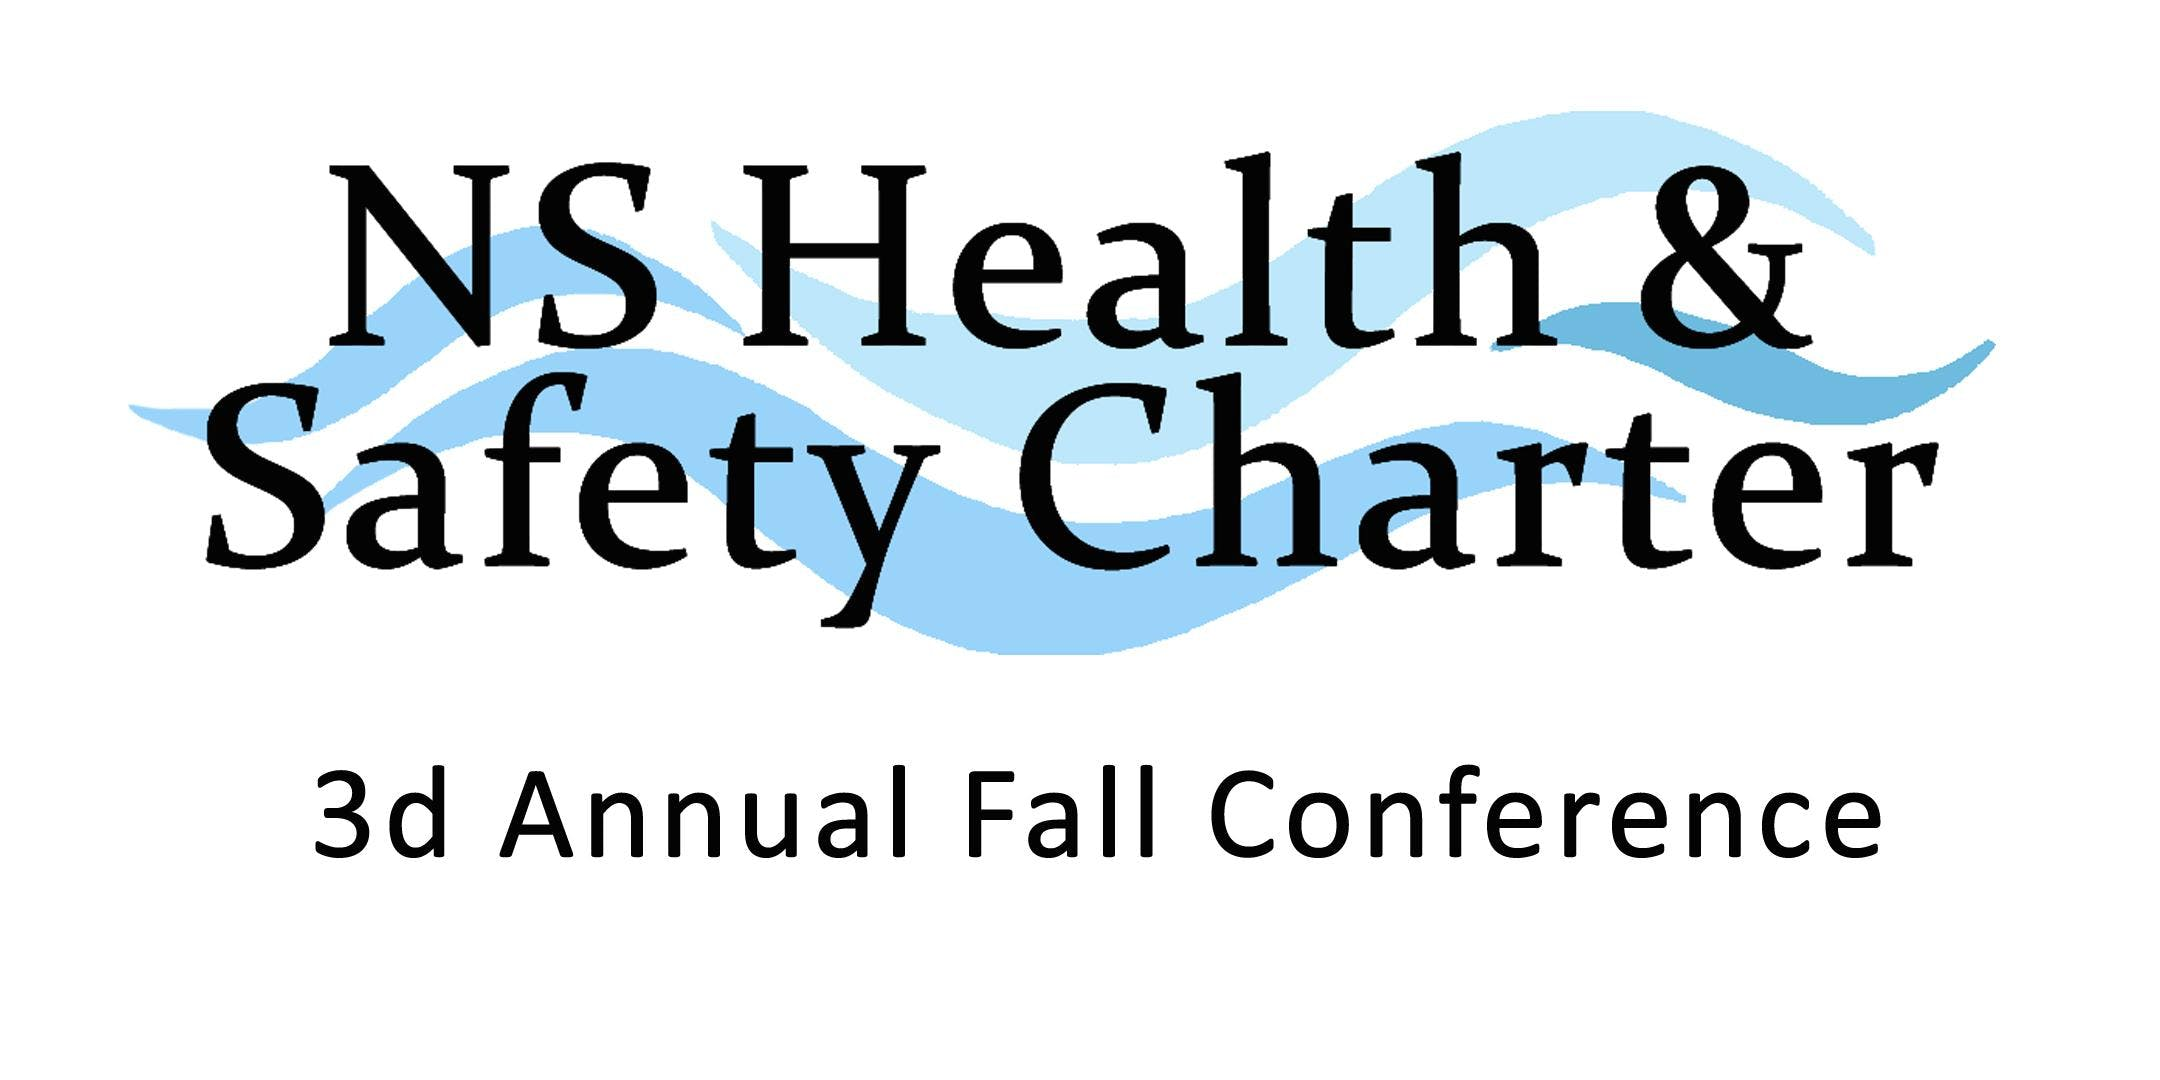 NS Health & Safety Charter 3d Annual Fall Con